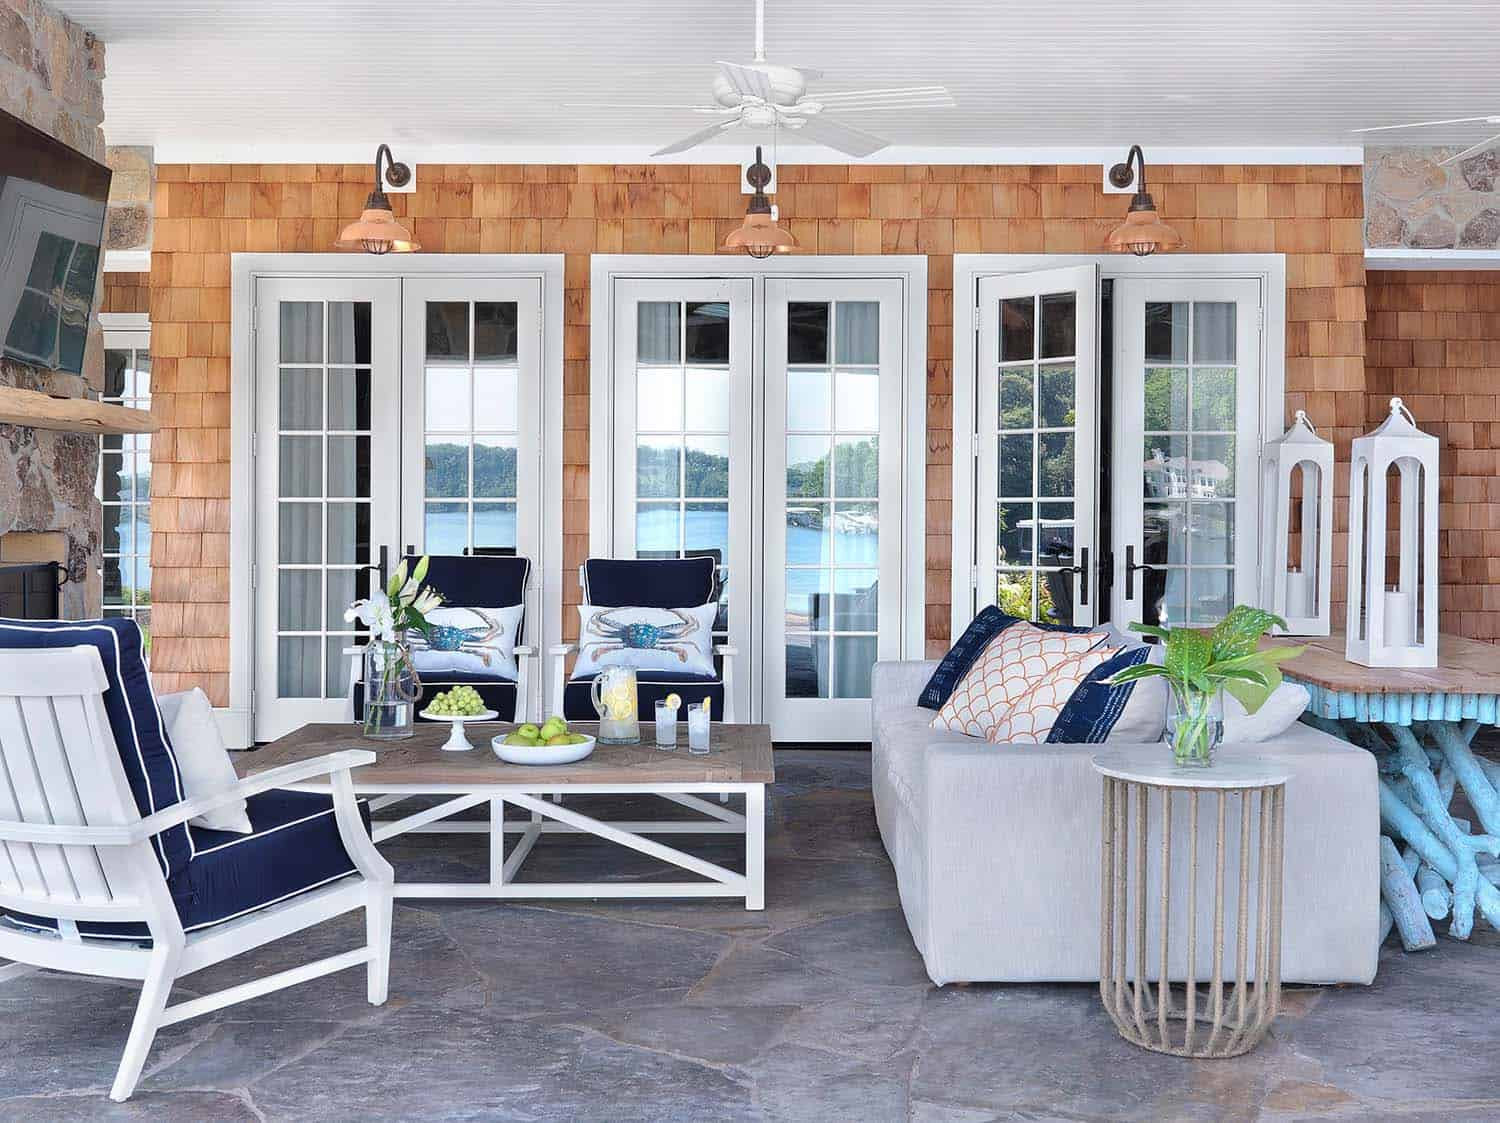 Lake House Design-Amy Studebaker Design-15-1 Kindesign